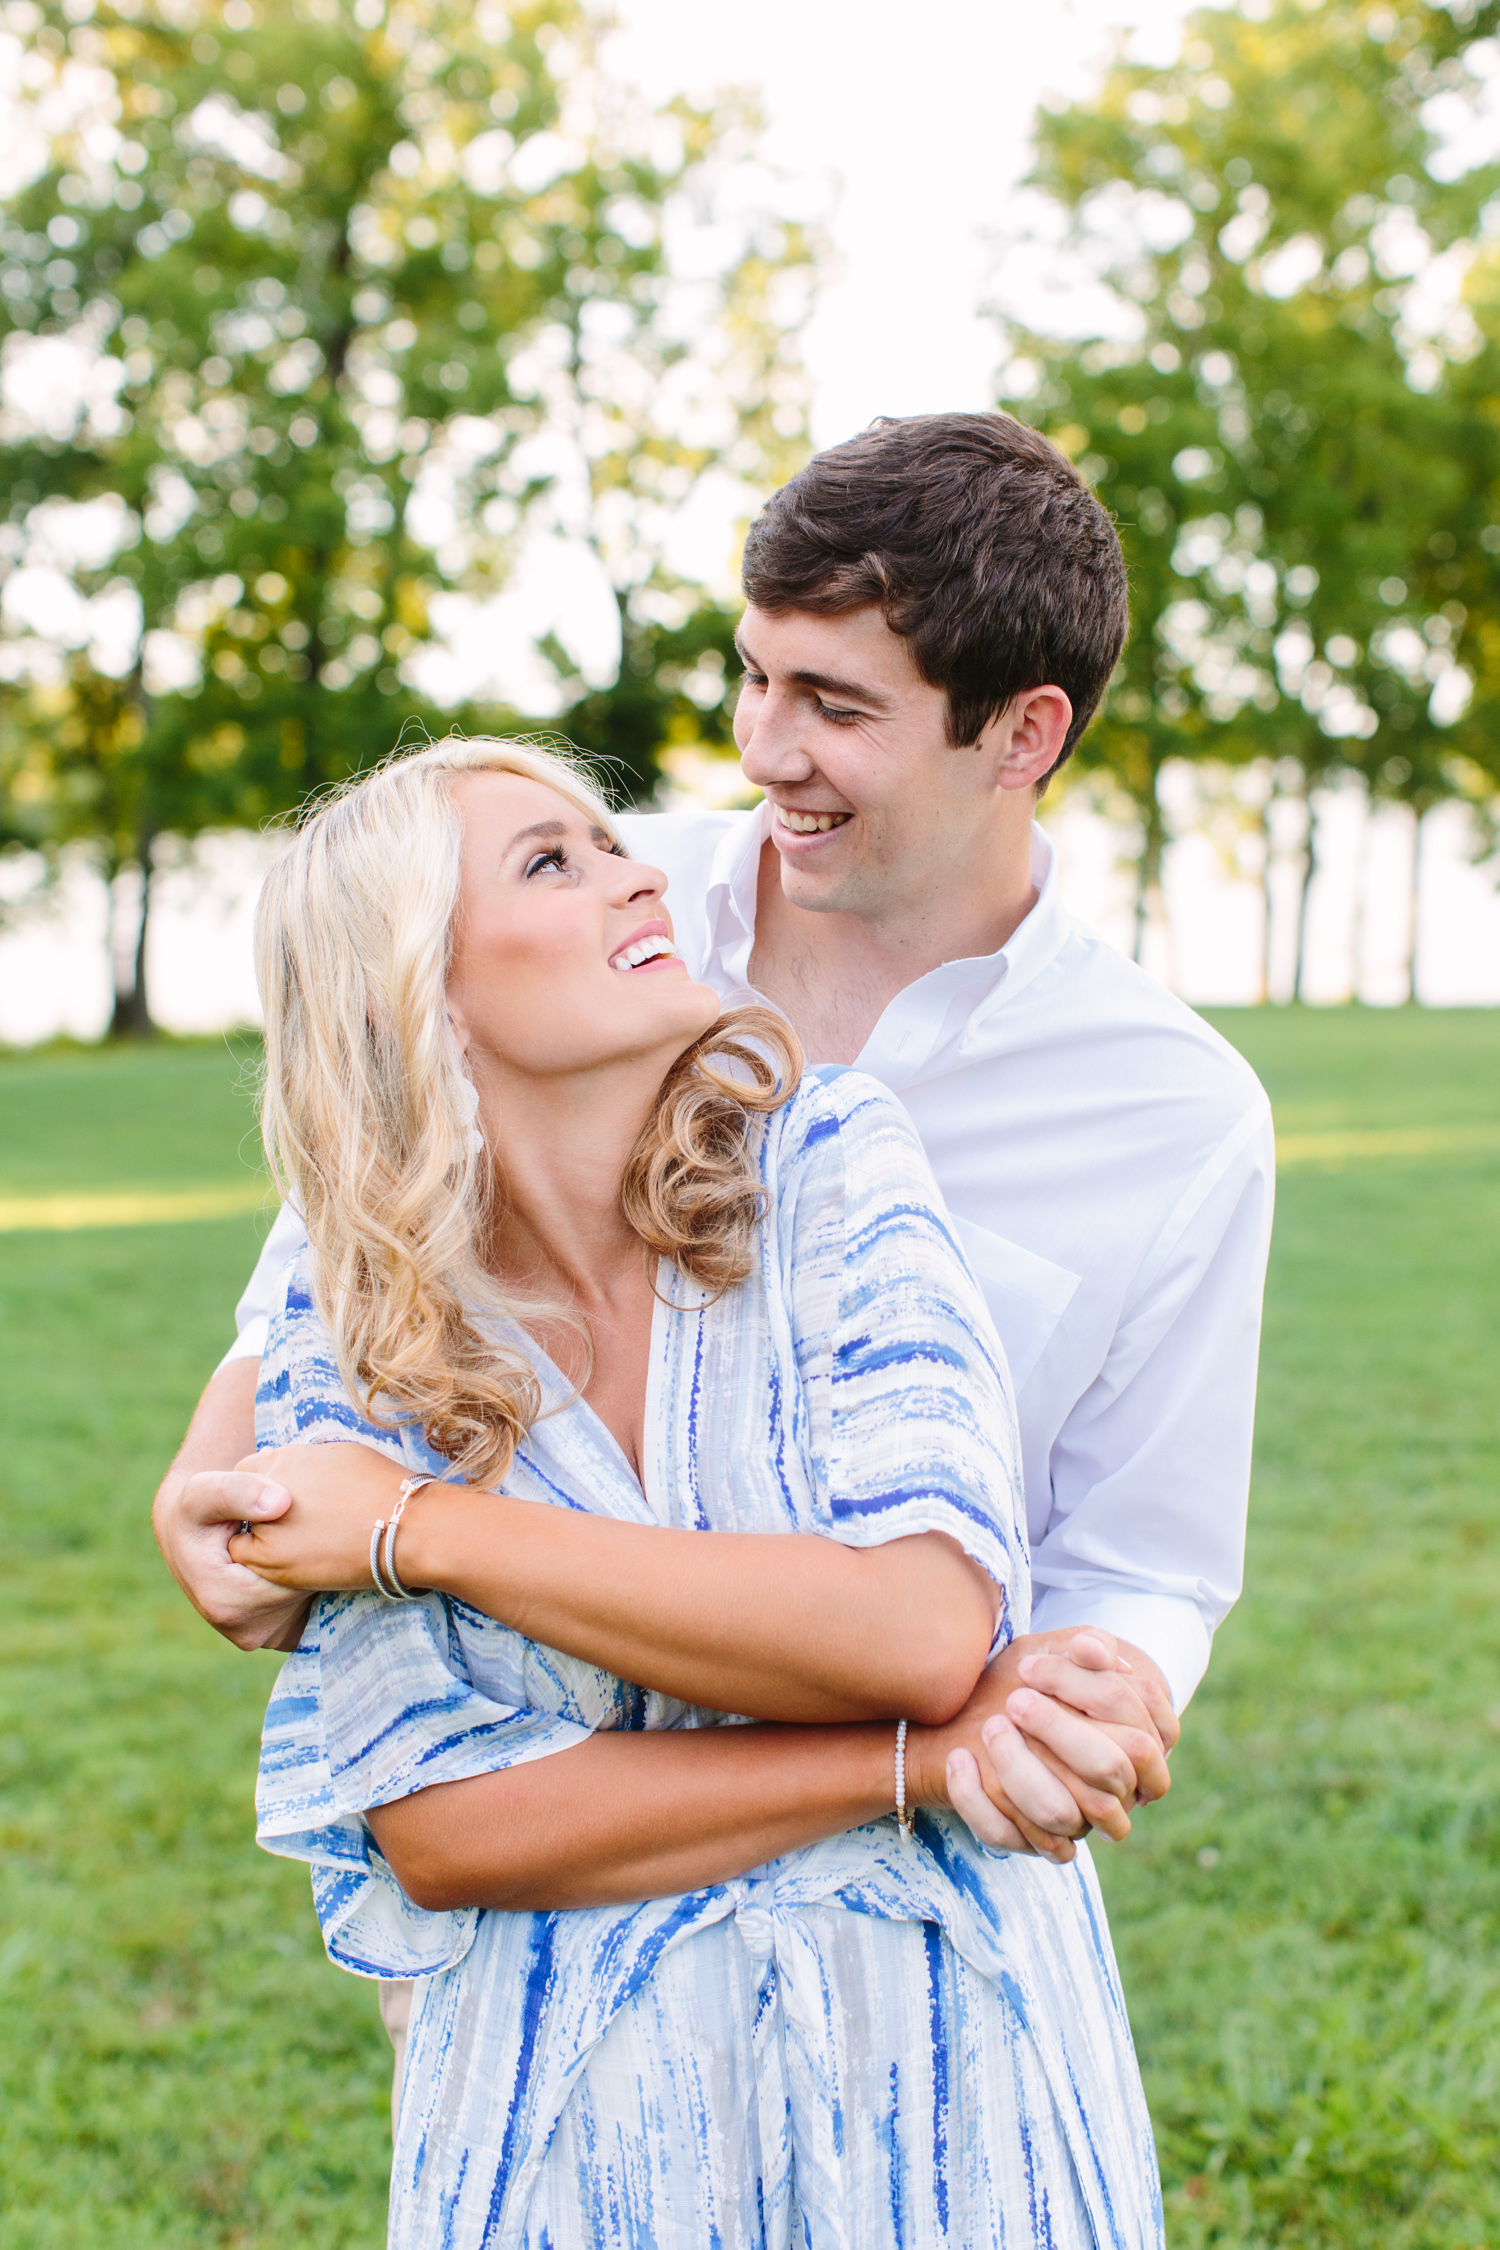 Lake Engagement Photos // Knoxville Photographer // Suzy Collins Photography